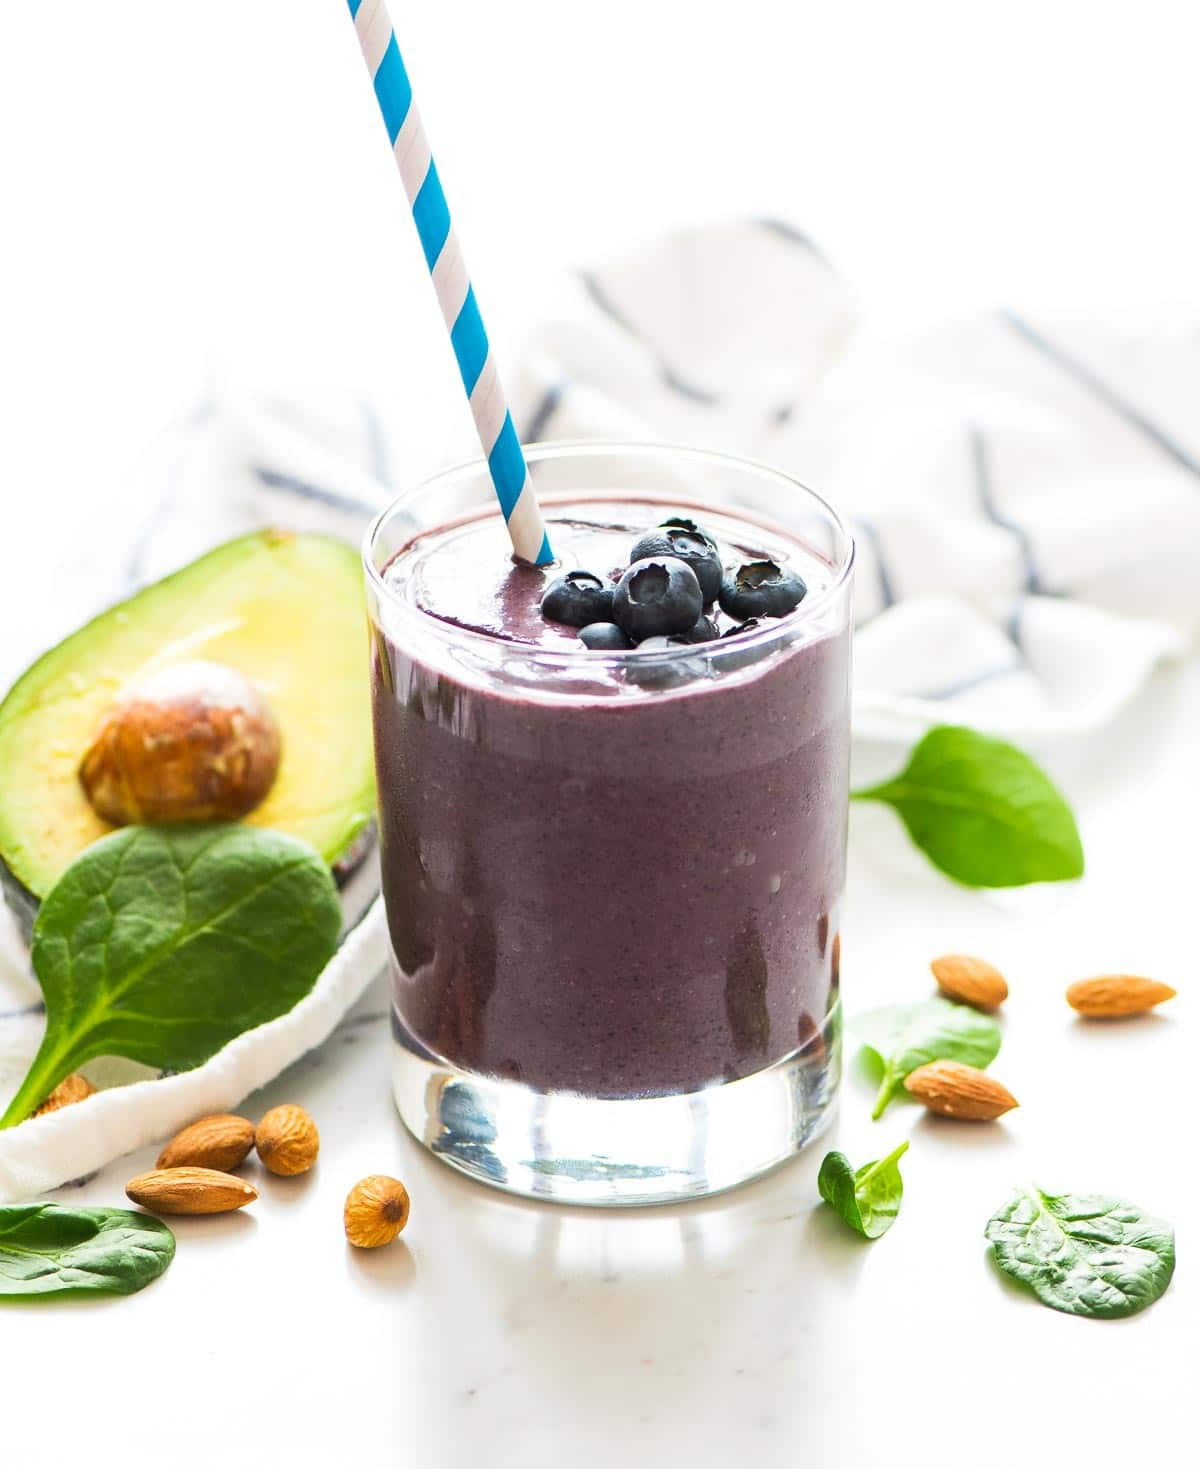 Smoothies With Avocado  Blueberry Banana Avocado Smoothie Recipe for Glowing Skin